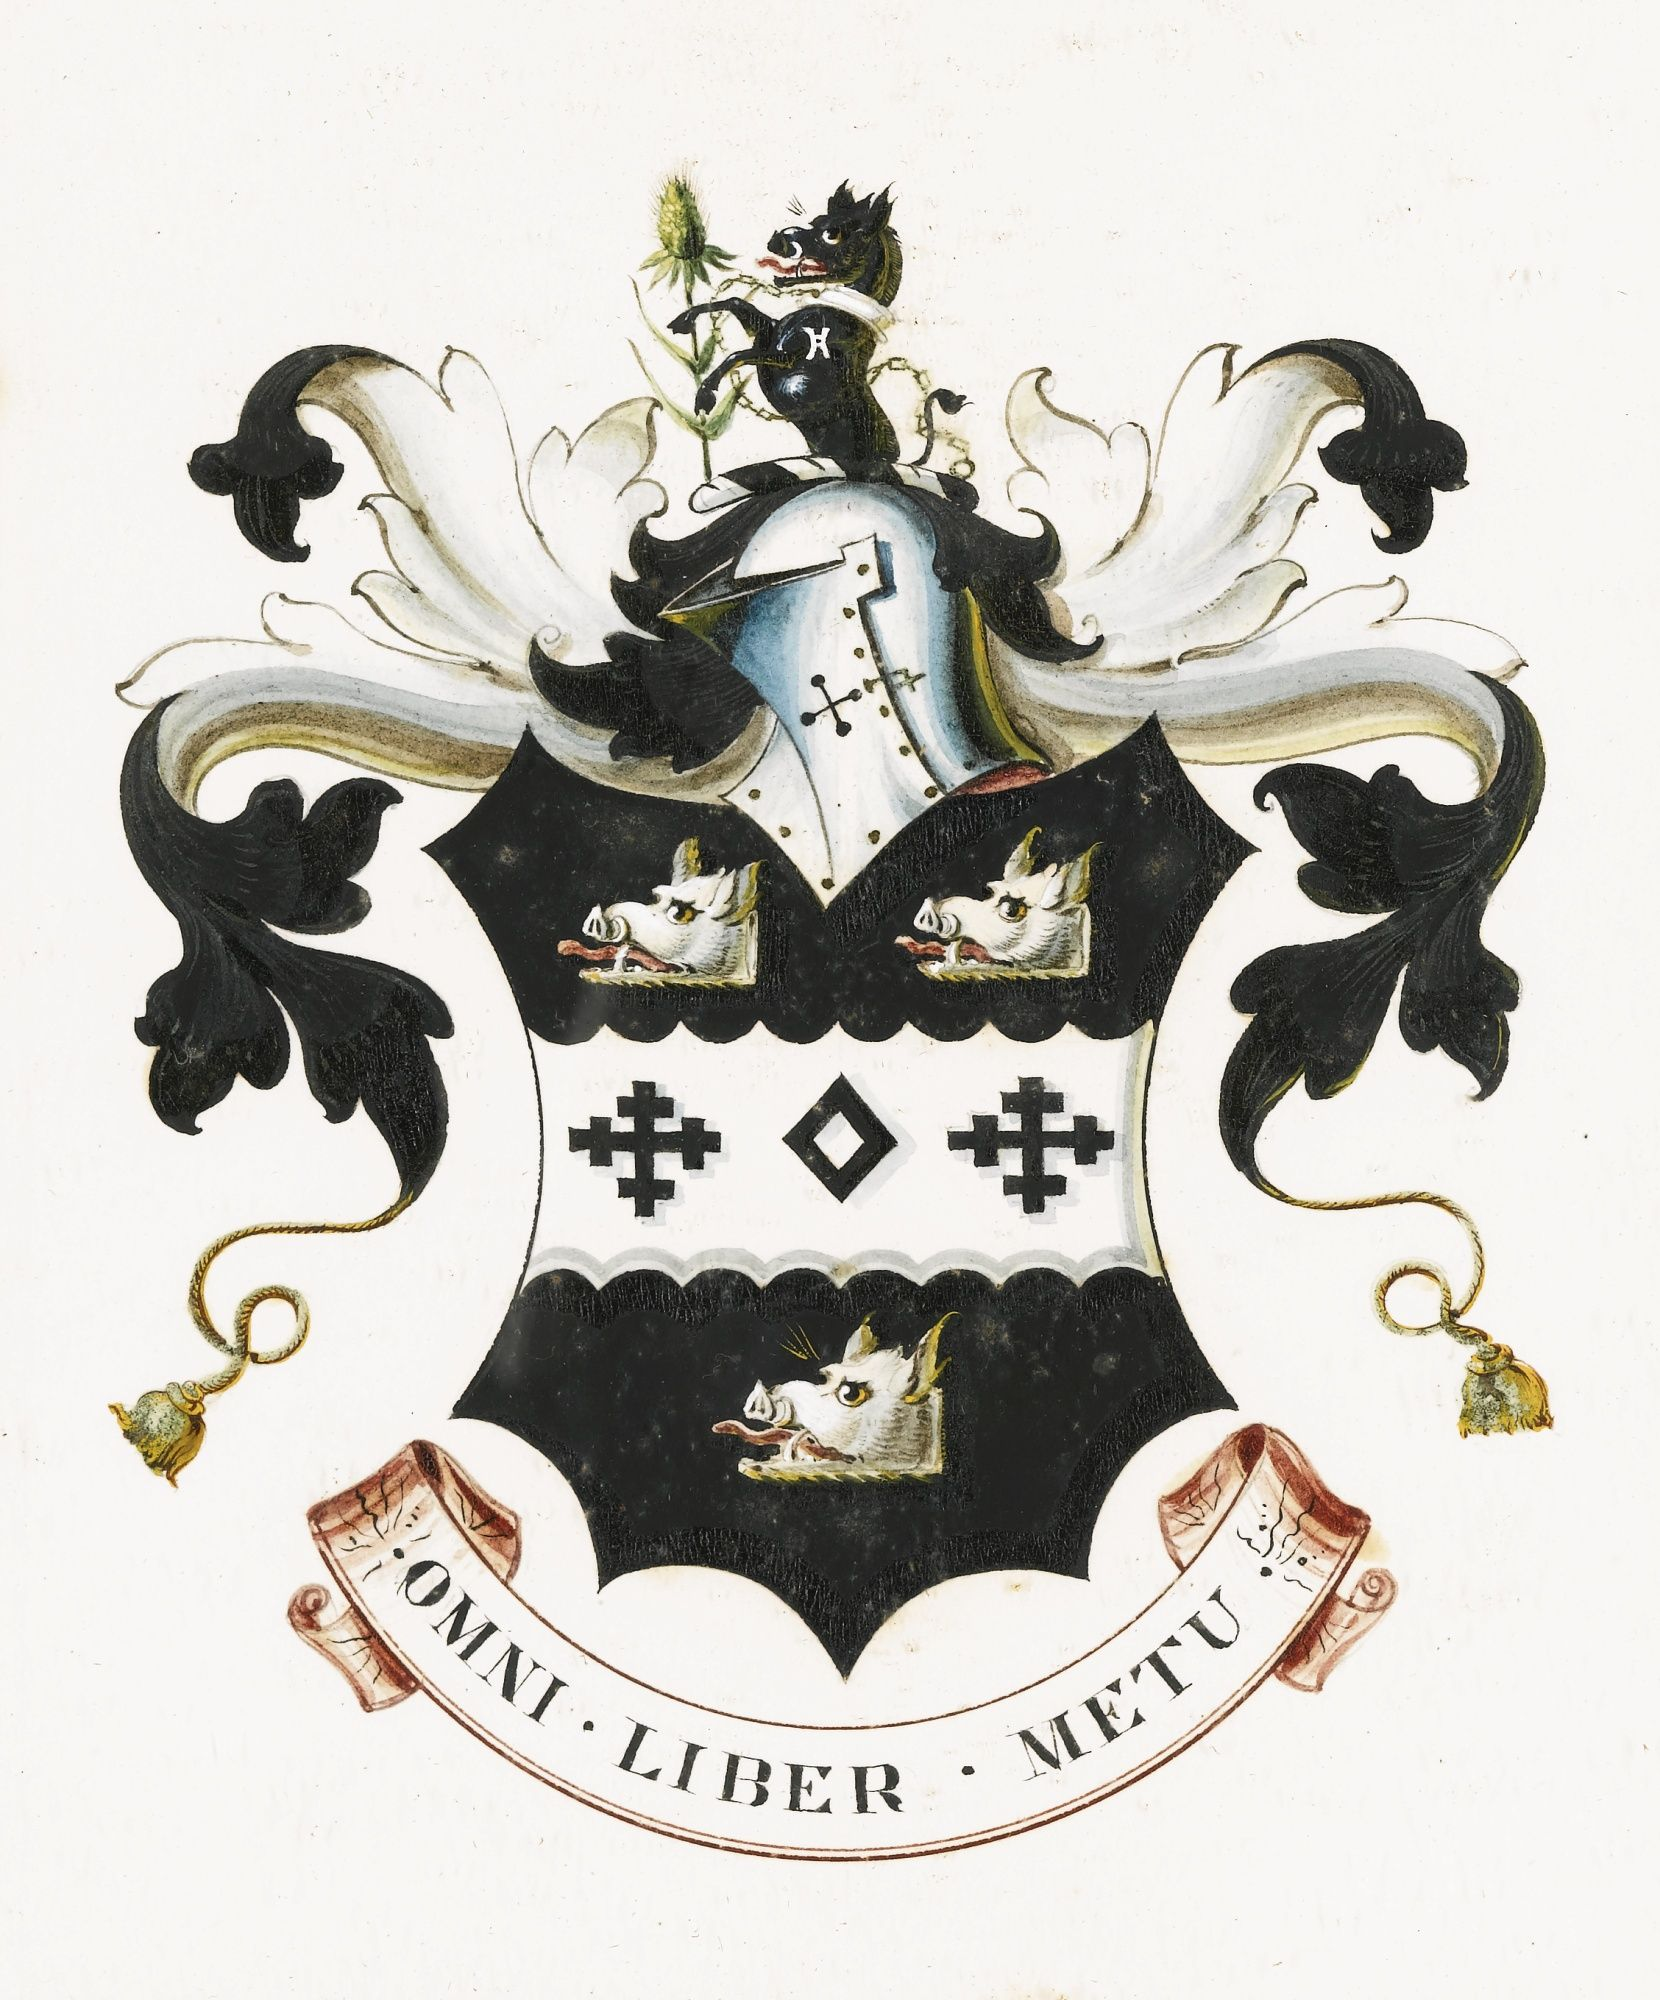 THE BIRLEY COAT OF ARMS, from the workshop of Frederick Durrant, watercolour and gouache